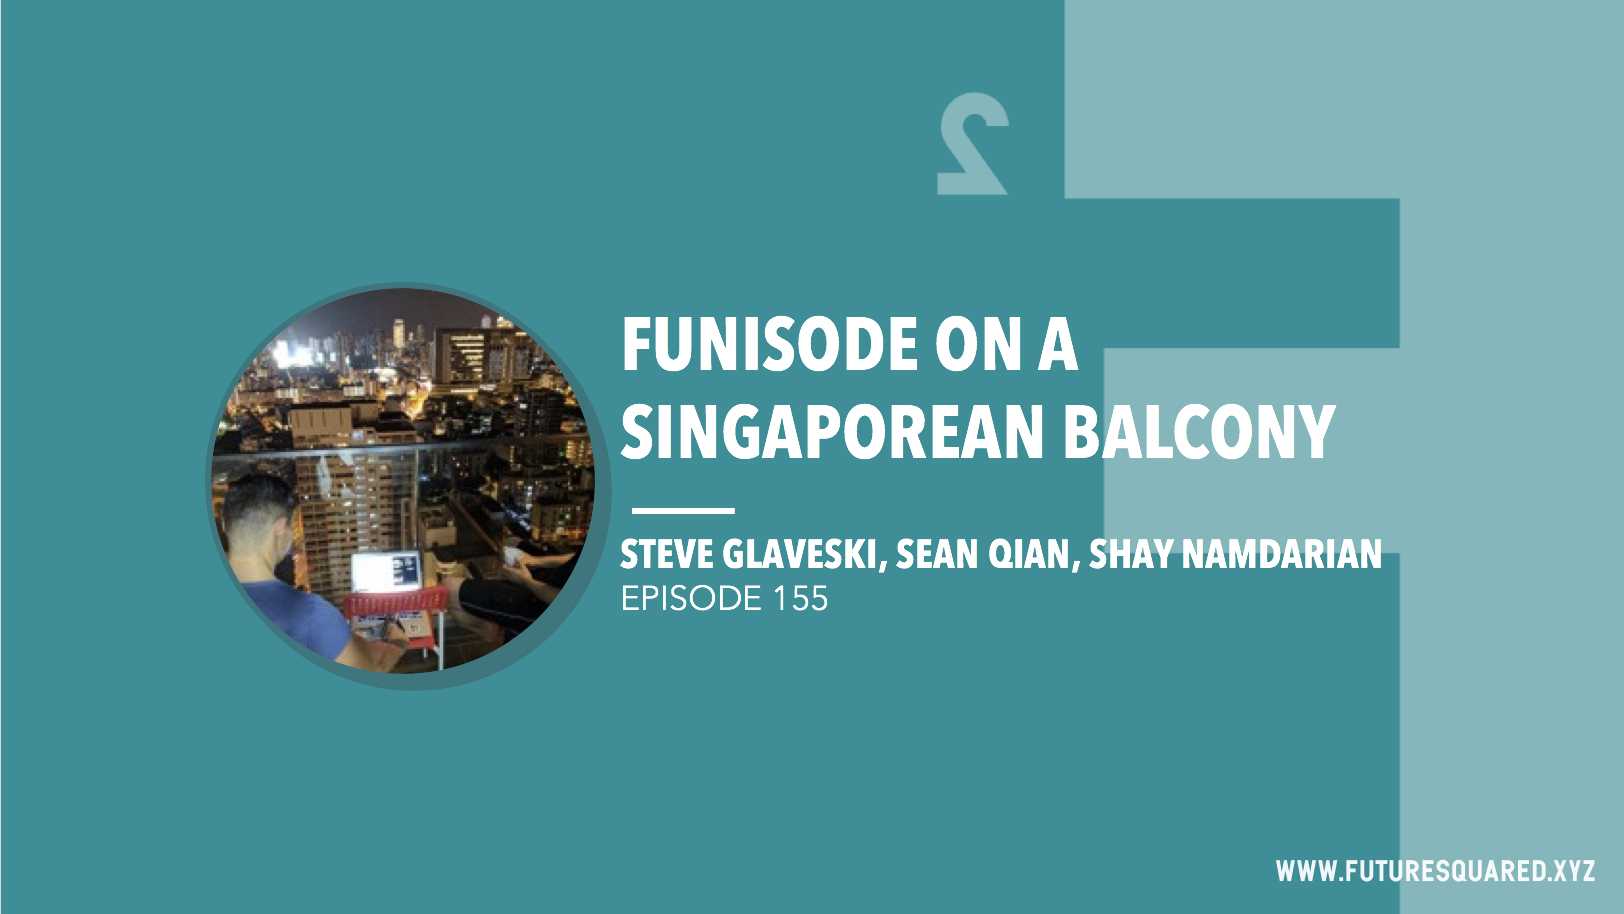 Future Squared Episode #155: Funisode on a Singaporean balcony